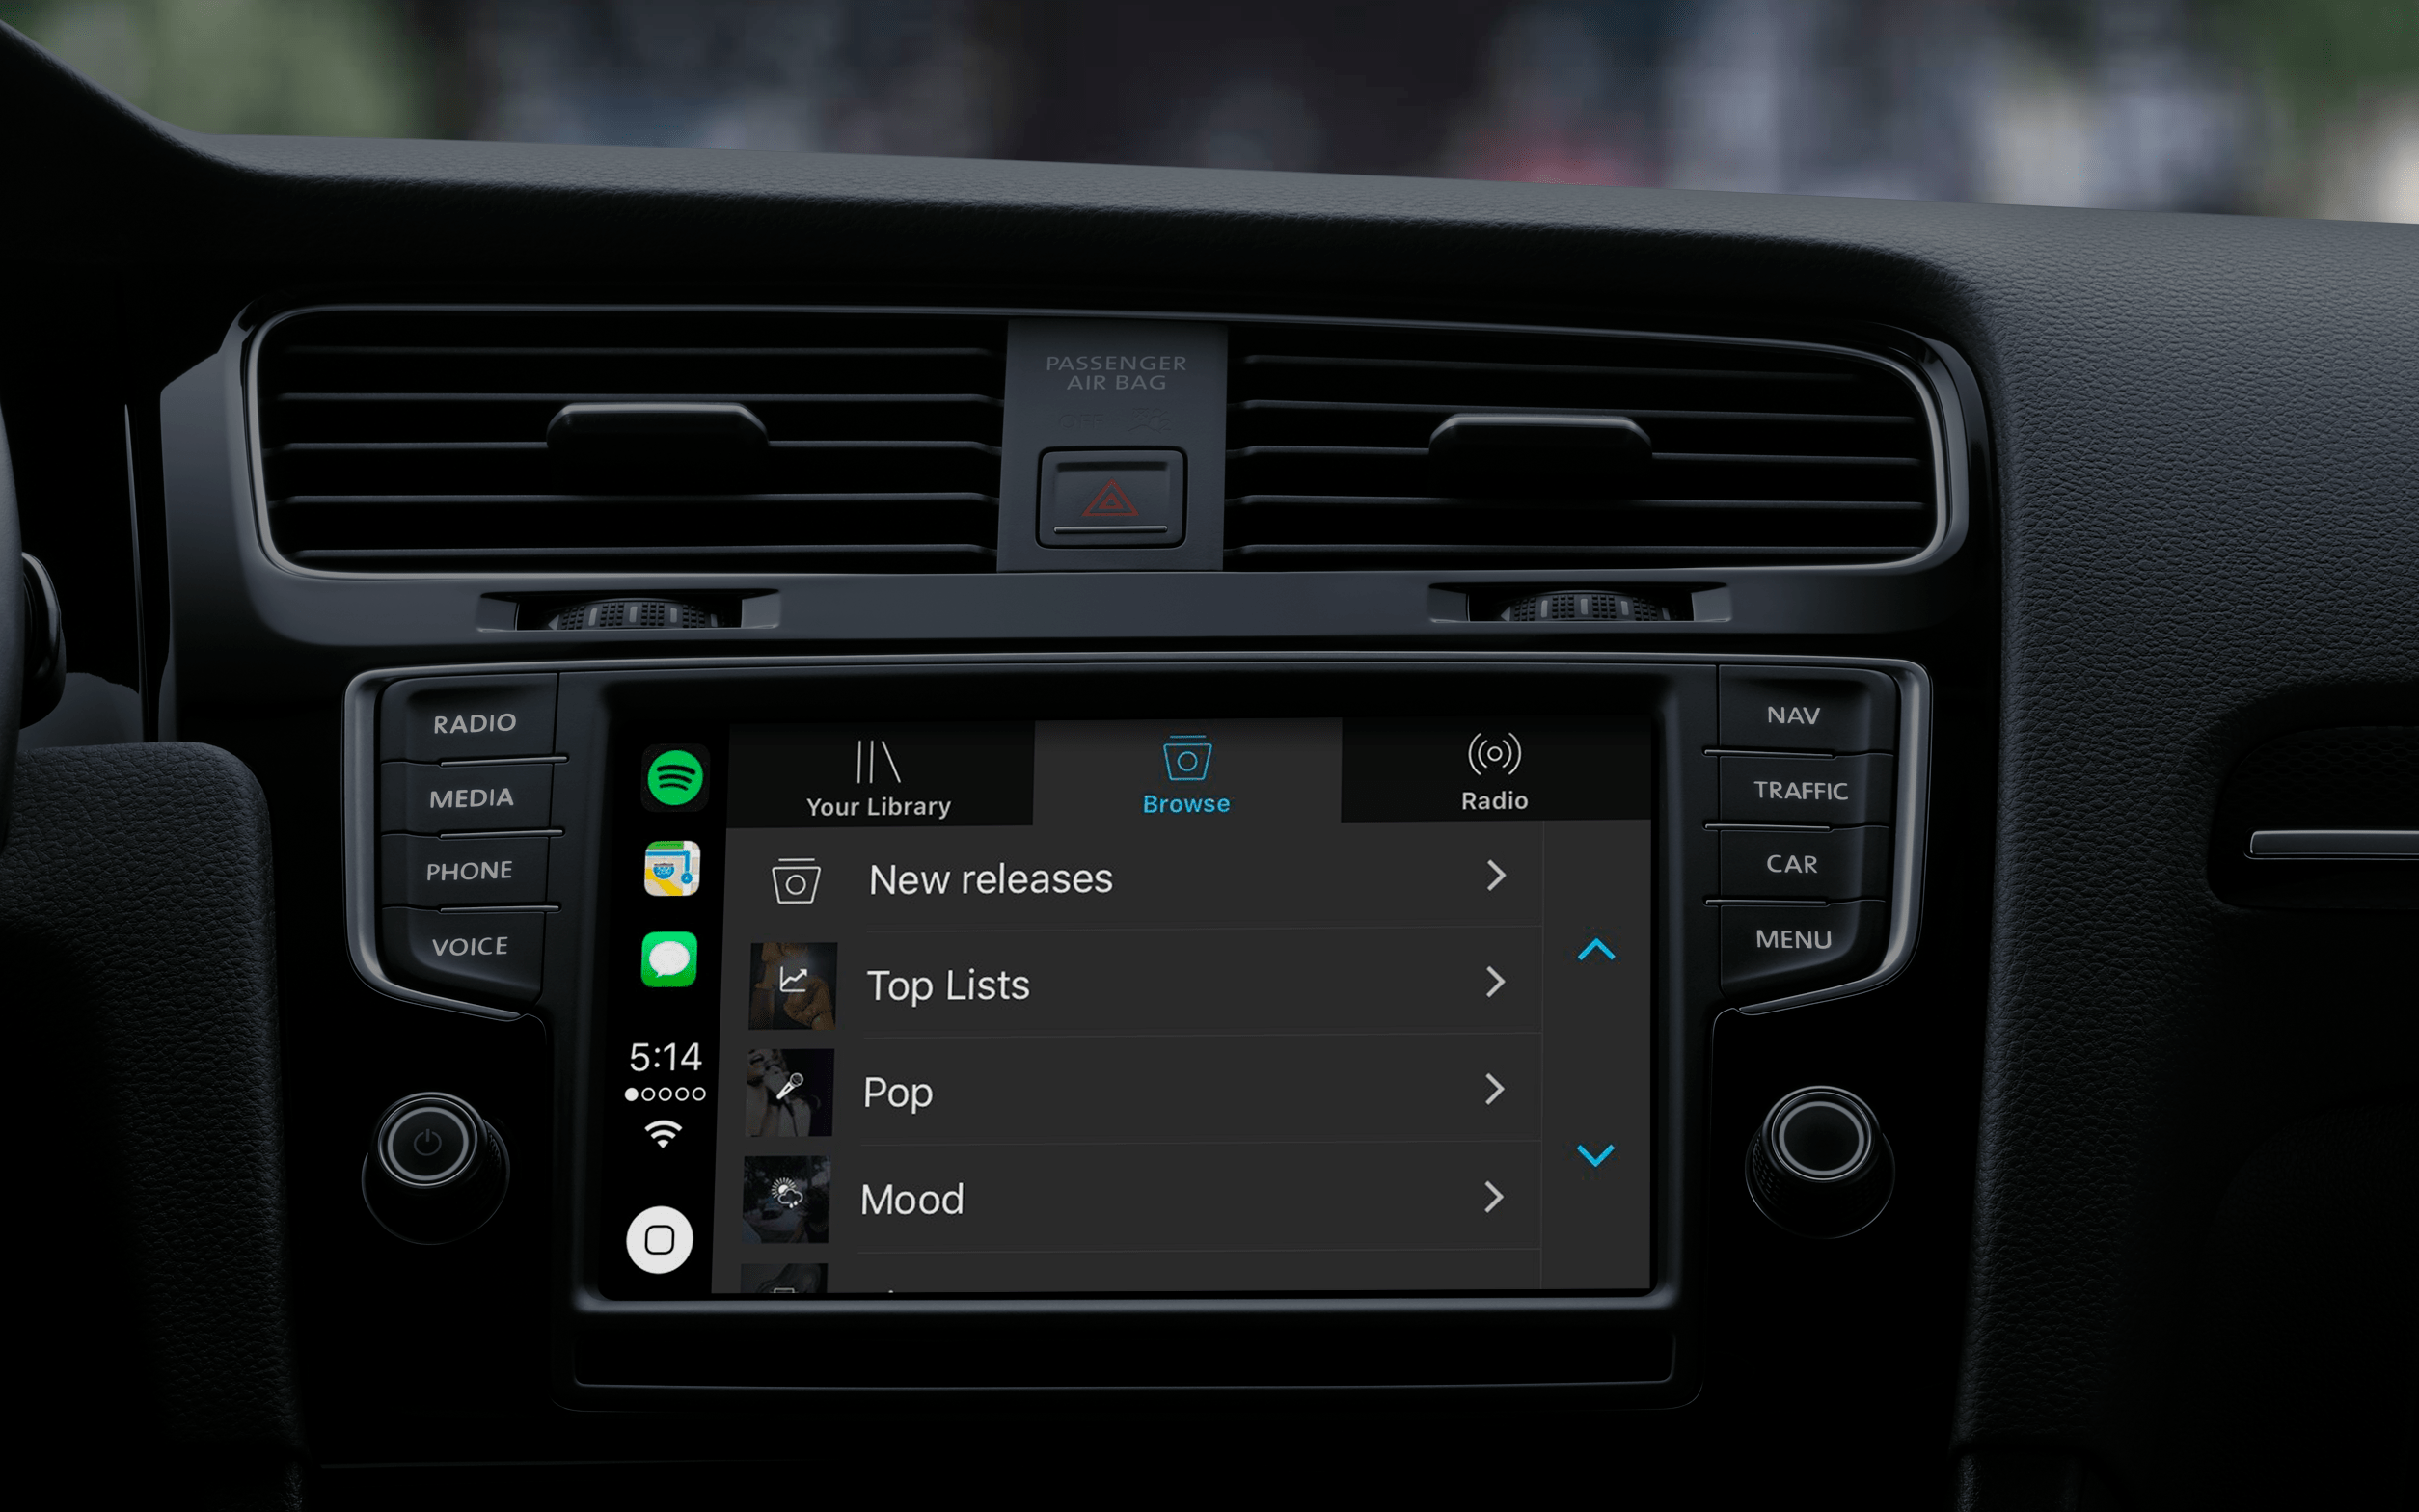 Apps supported by apple CarPlay: Spotify